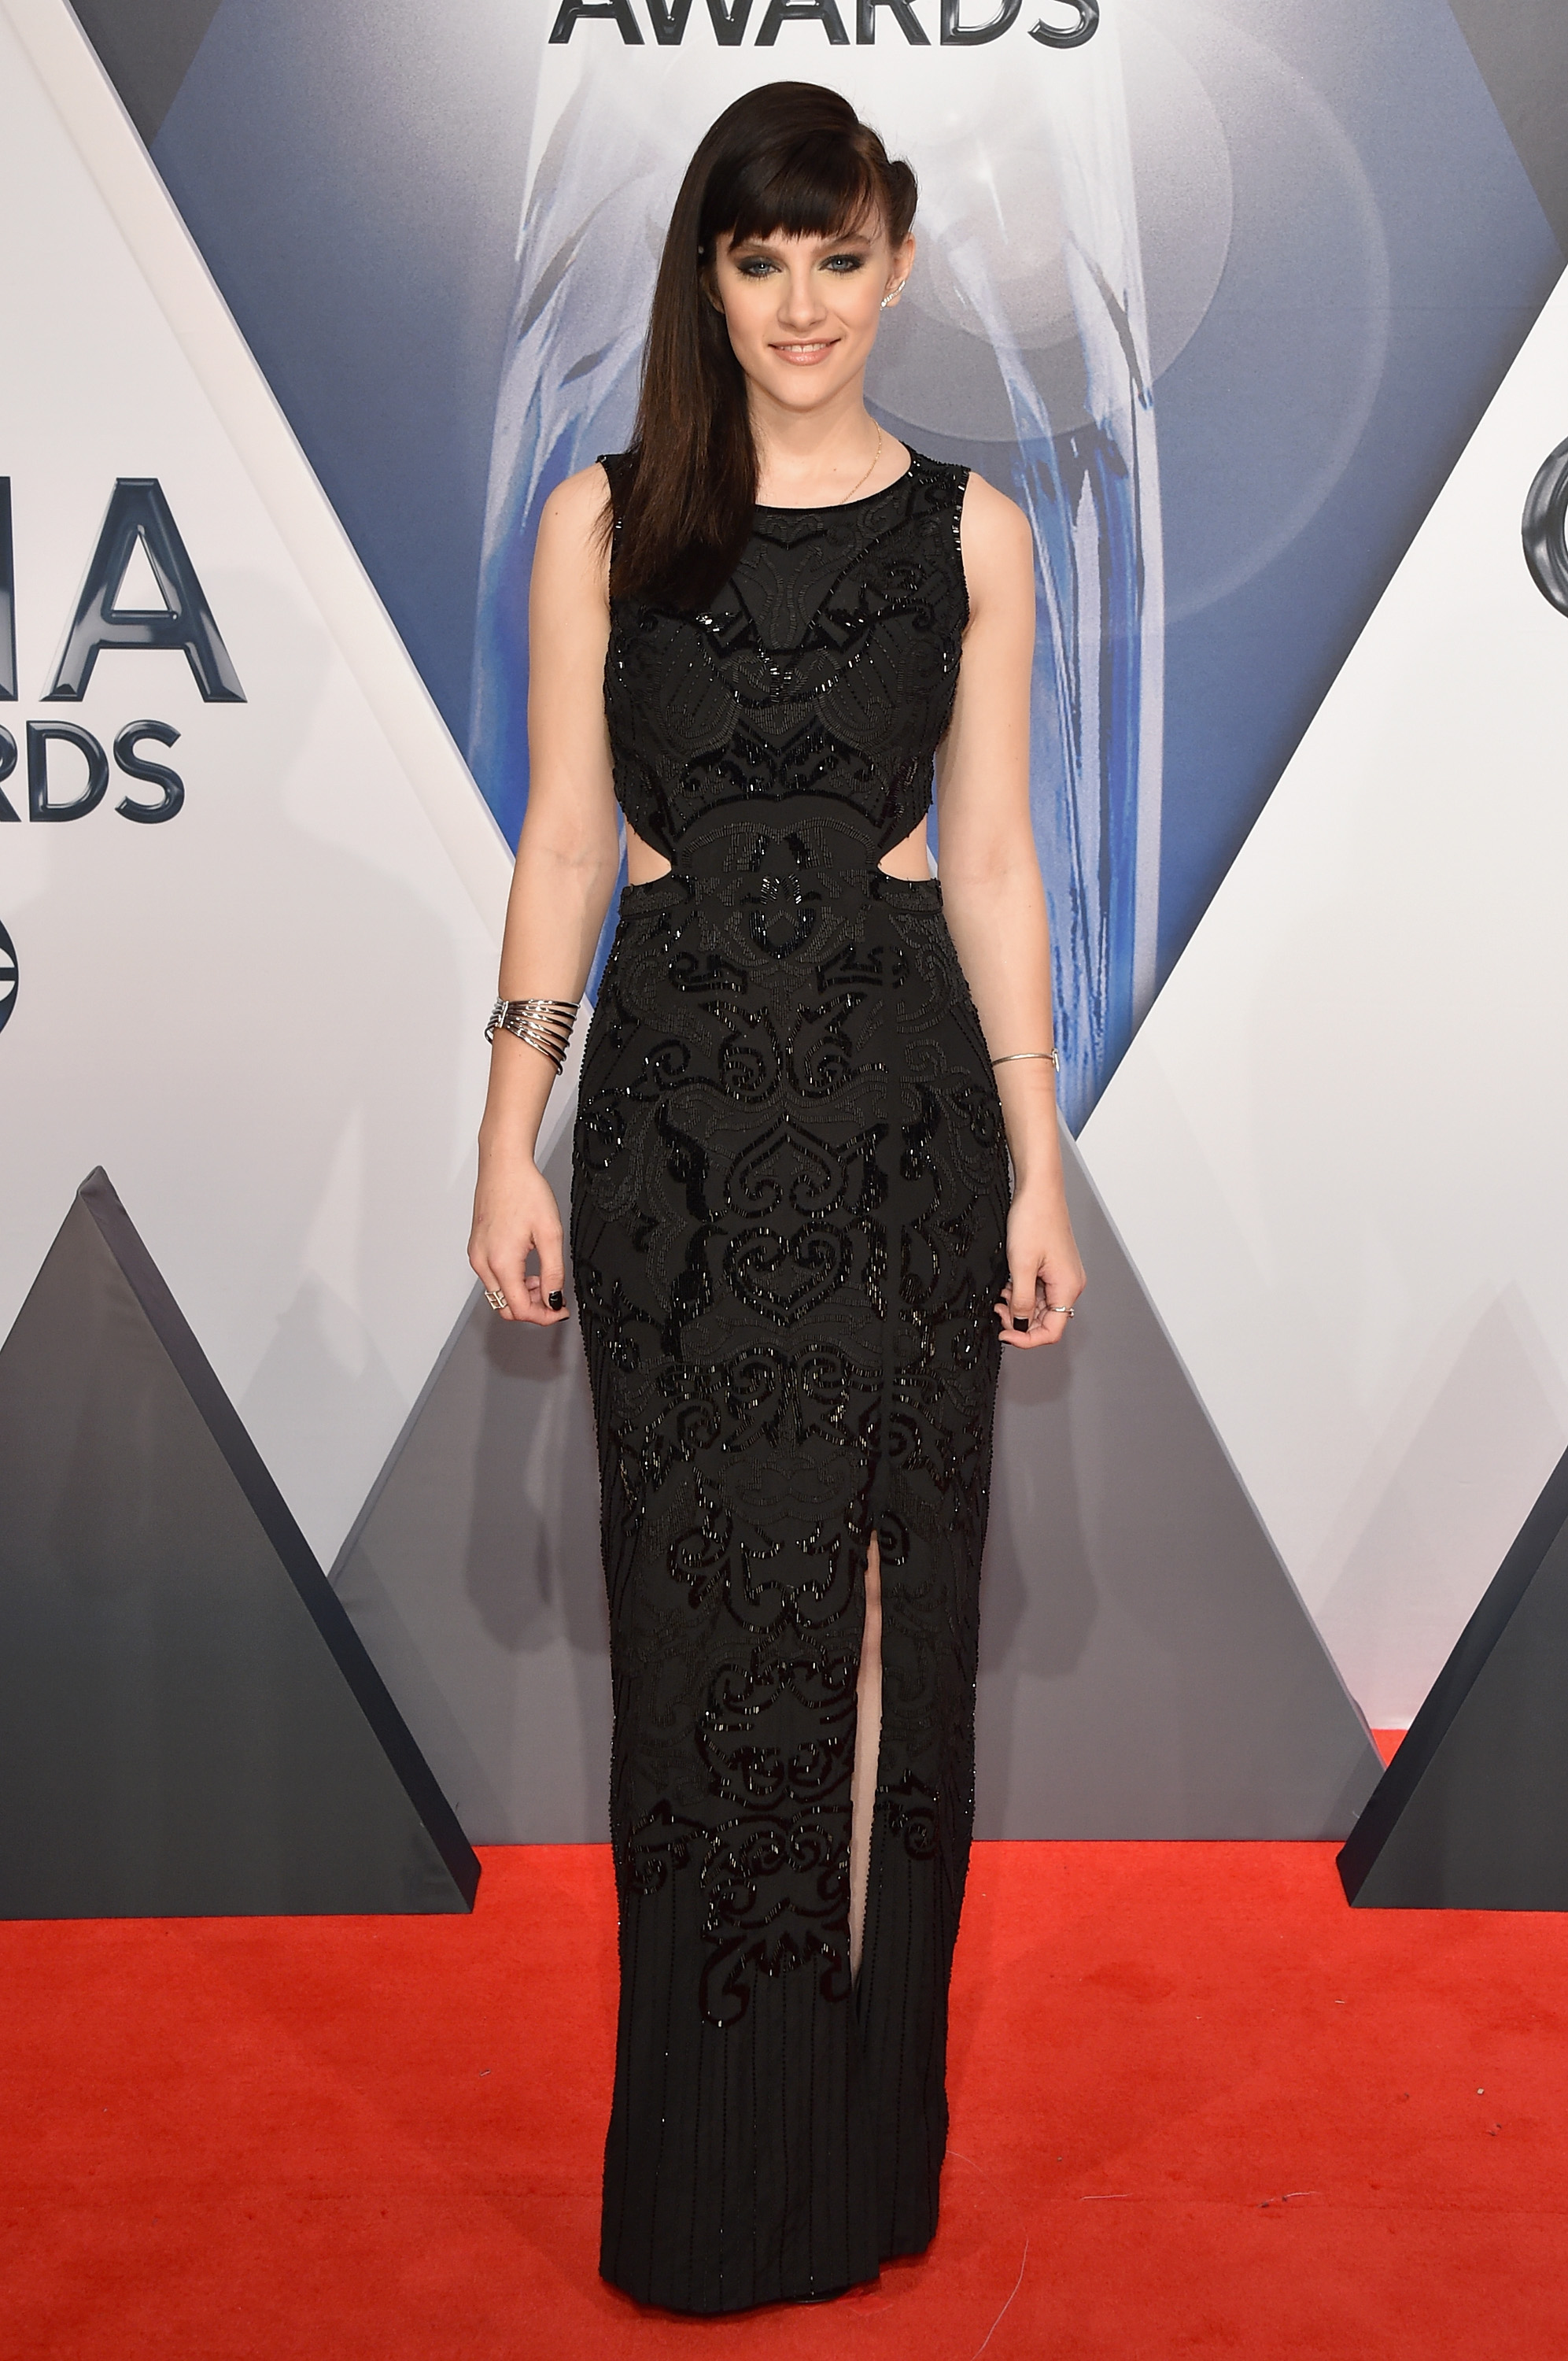 Aubrey Peeples At The Cma Awards Celebrity Style Hits And Misses For November 2015 Gallery